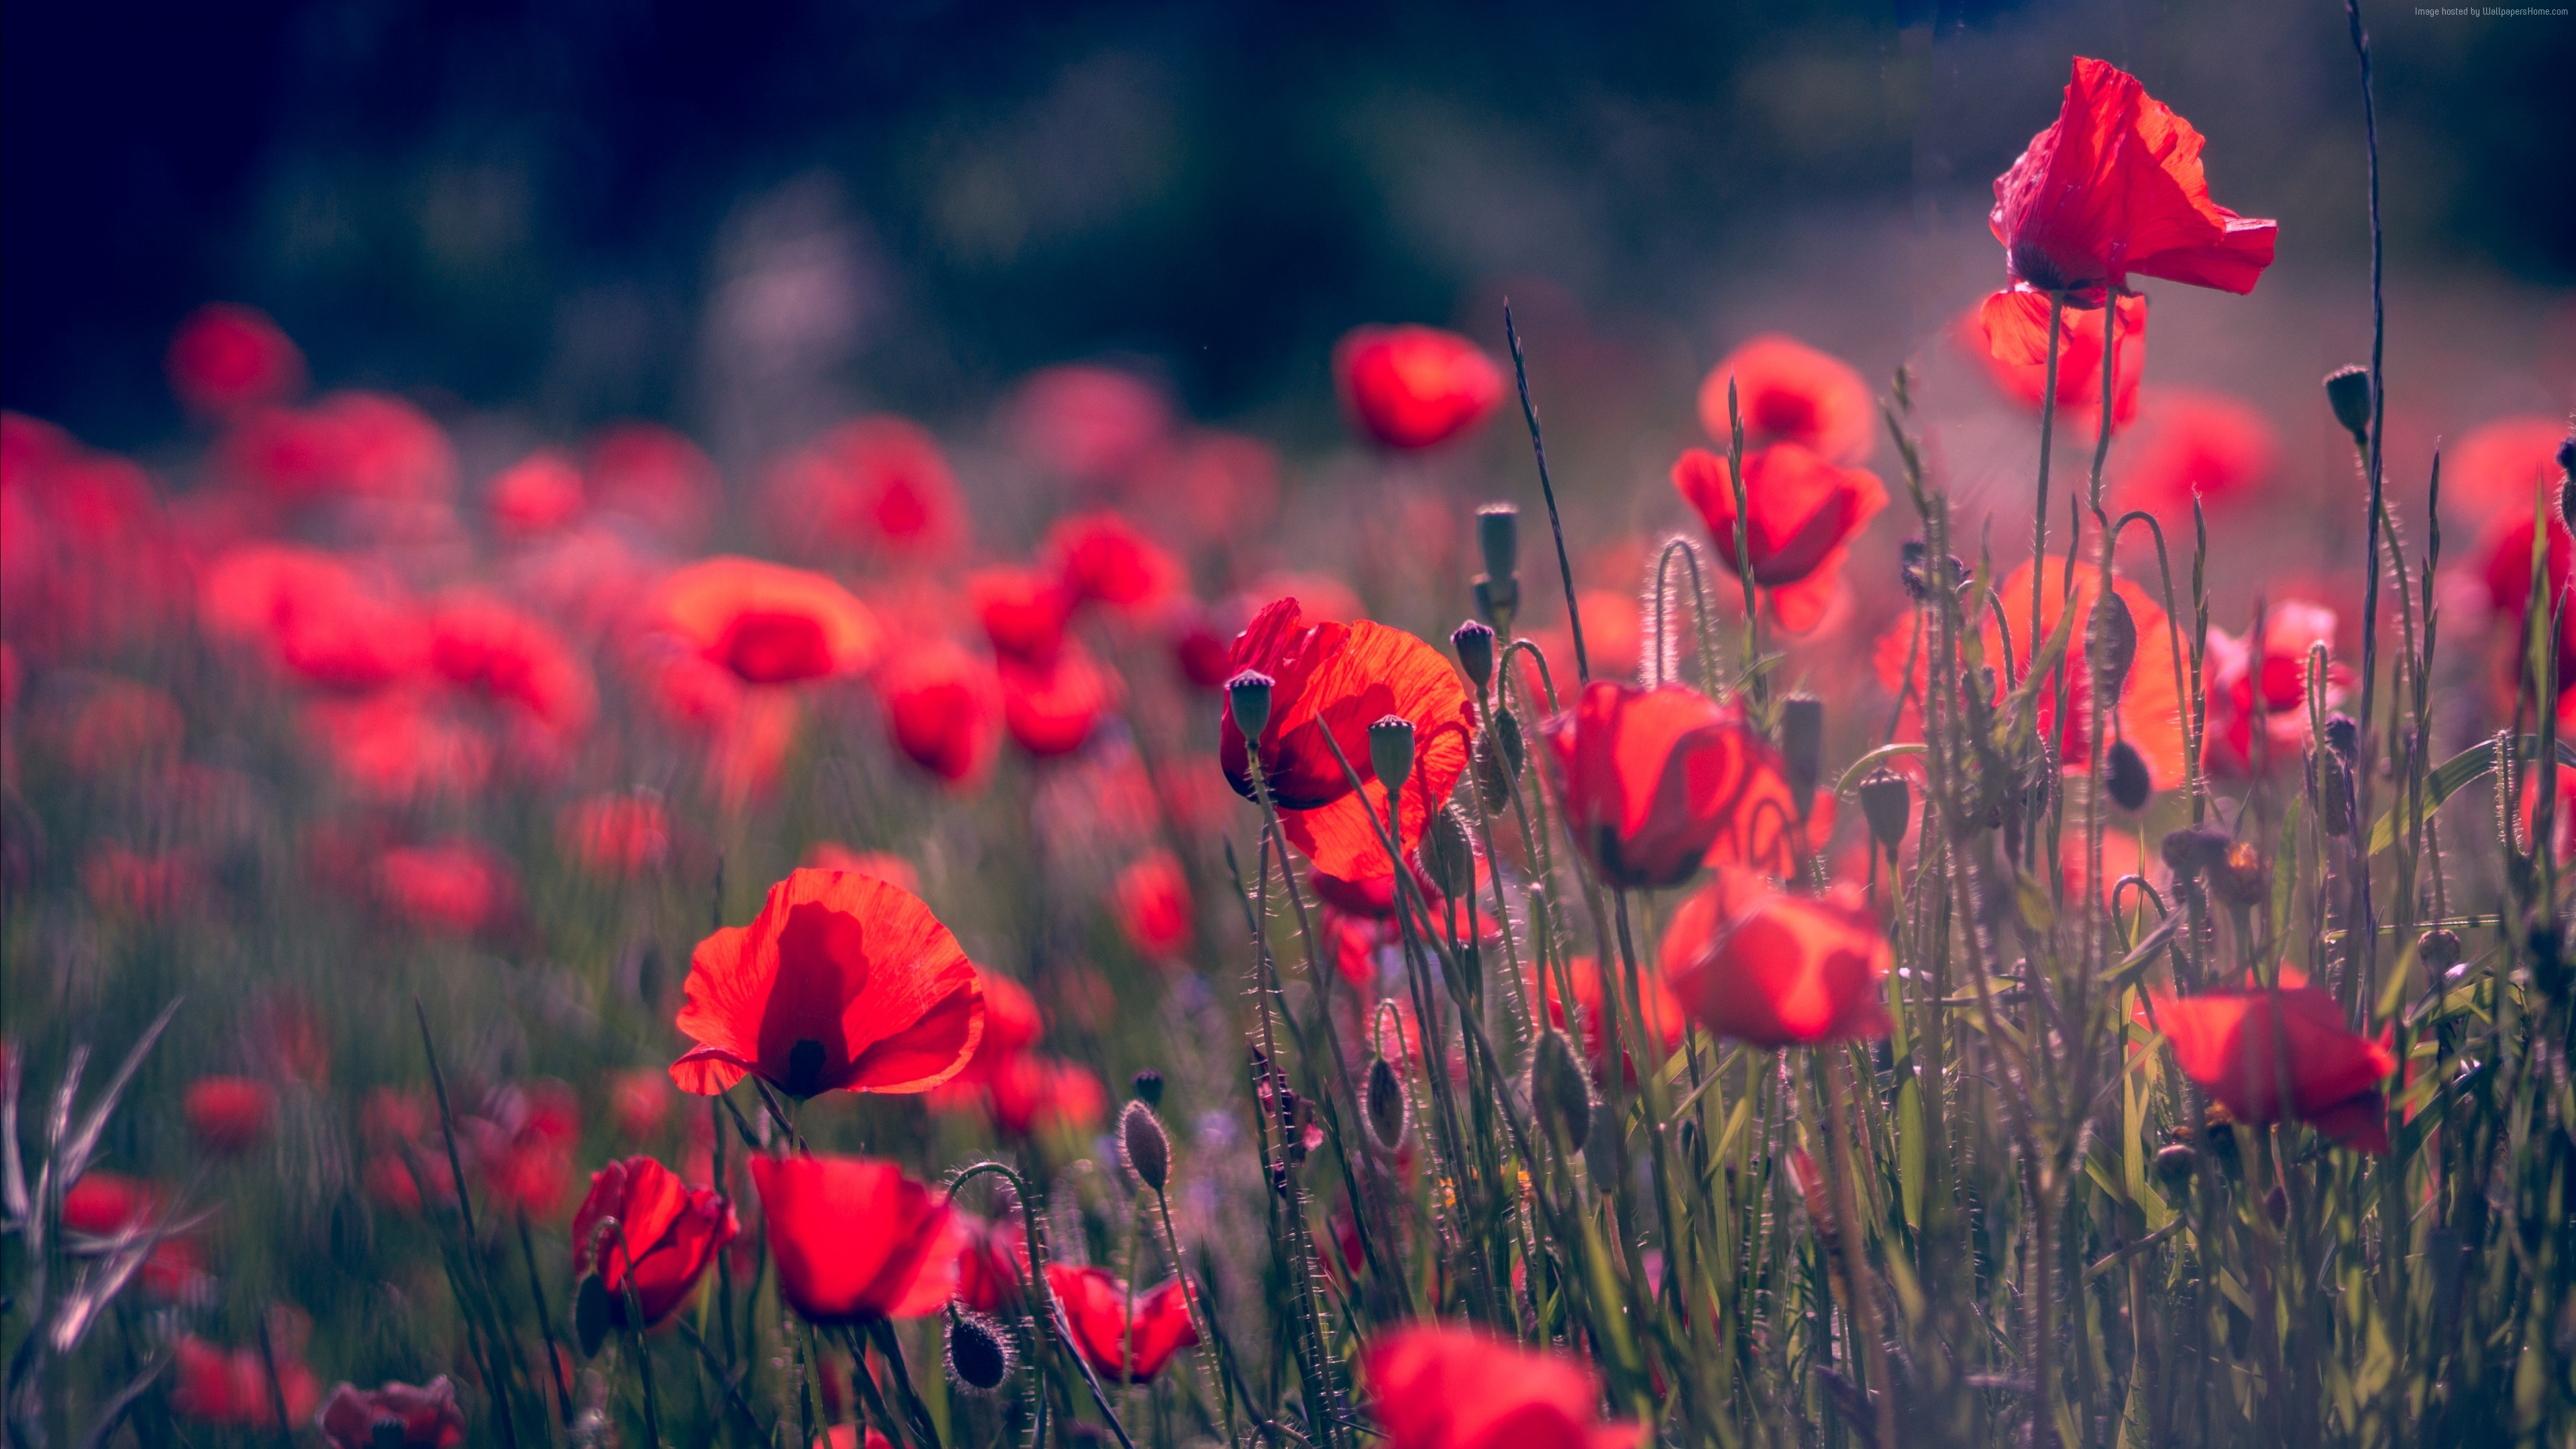 3840x2160 Wallpaper Poppy, Red Flower, Summer, 4K, 5K, Nature